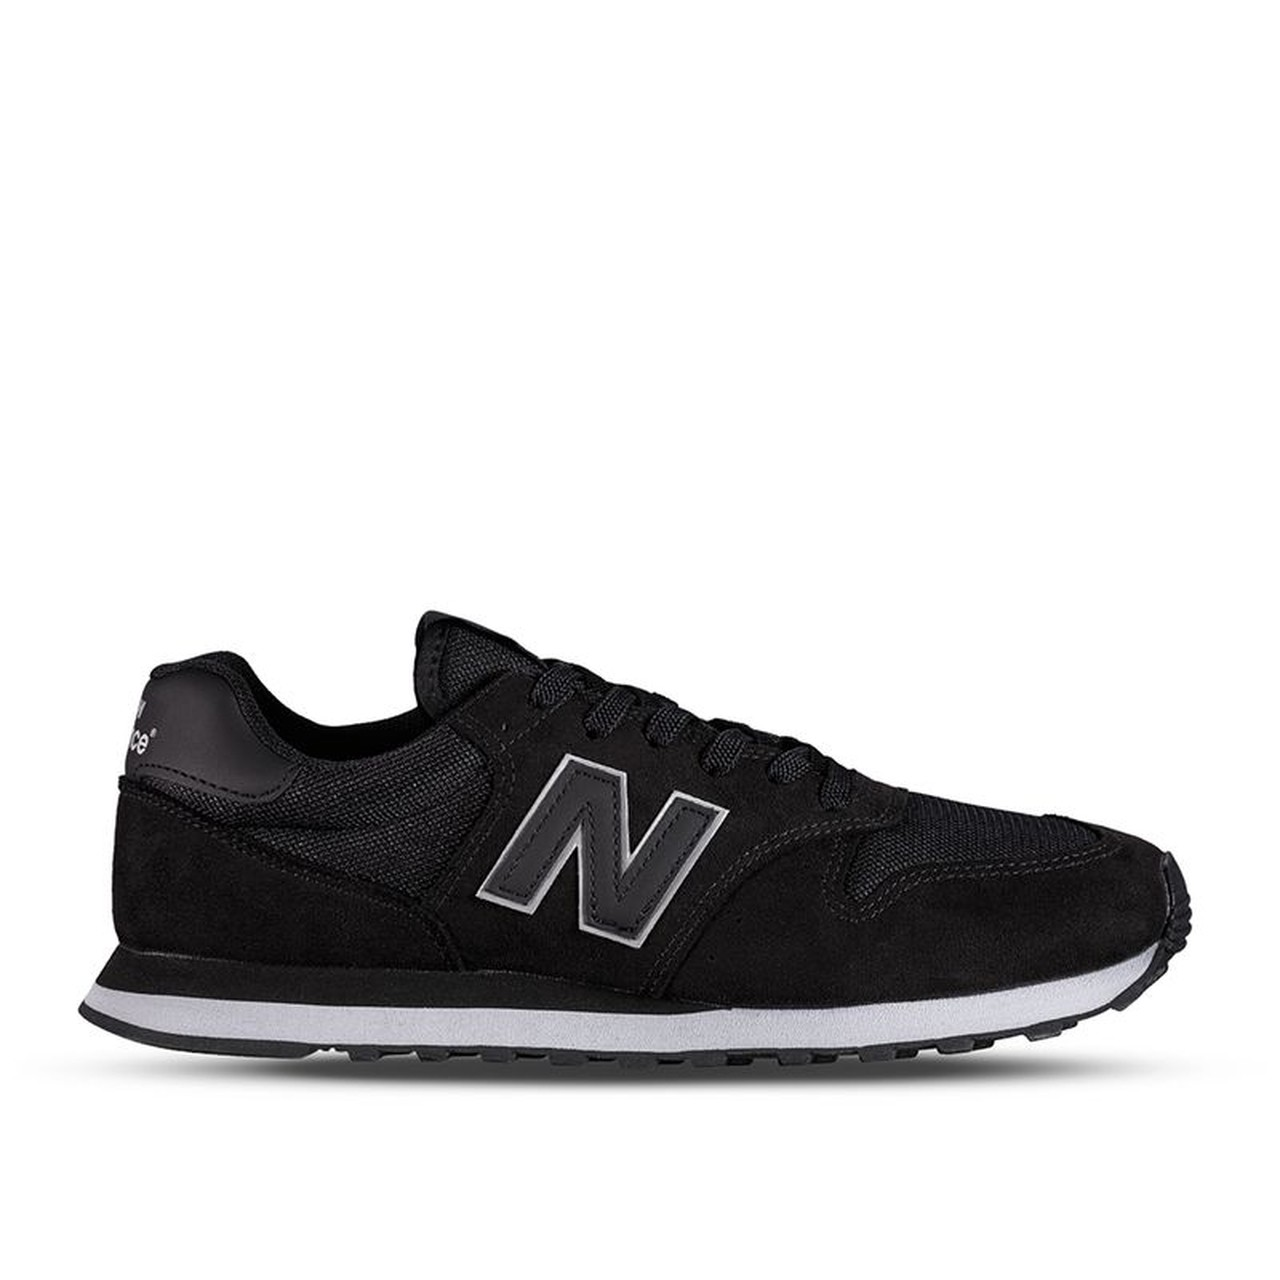 TÊNIS NEW BALANCE MASCULINO JOGGING GM500 BORDO